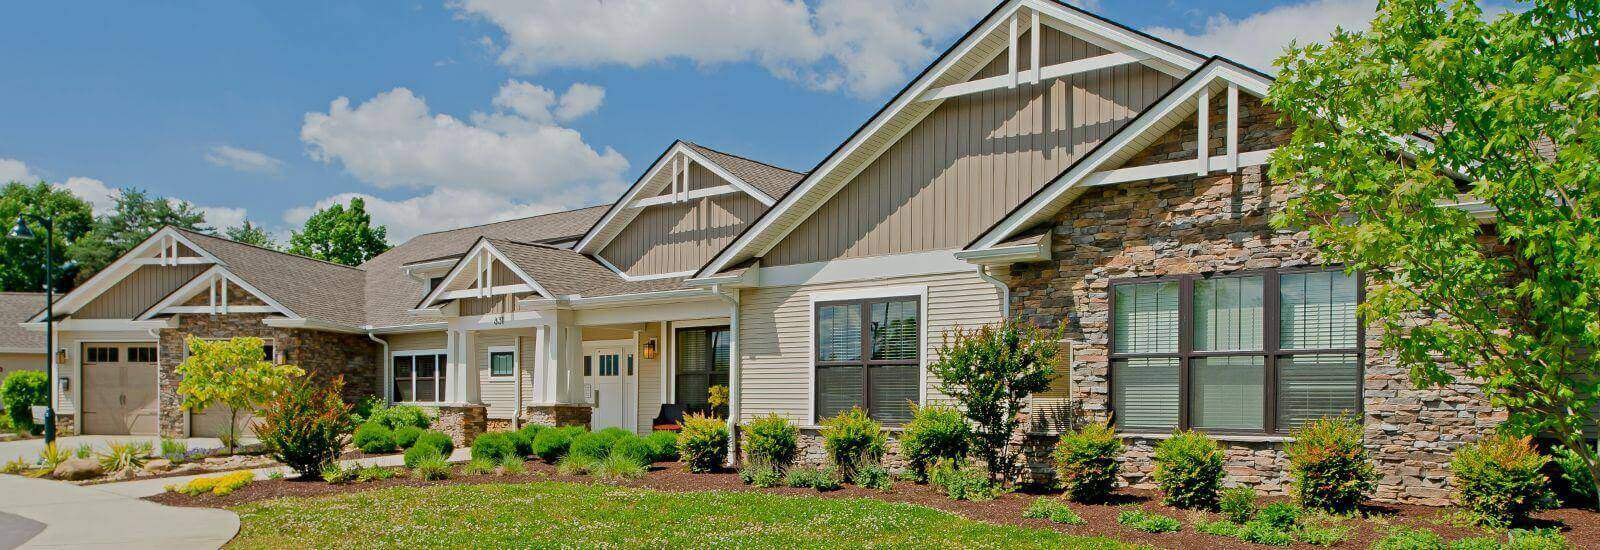 Assisted Living and Memory Care at Asbury Place Maryville